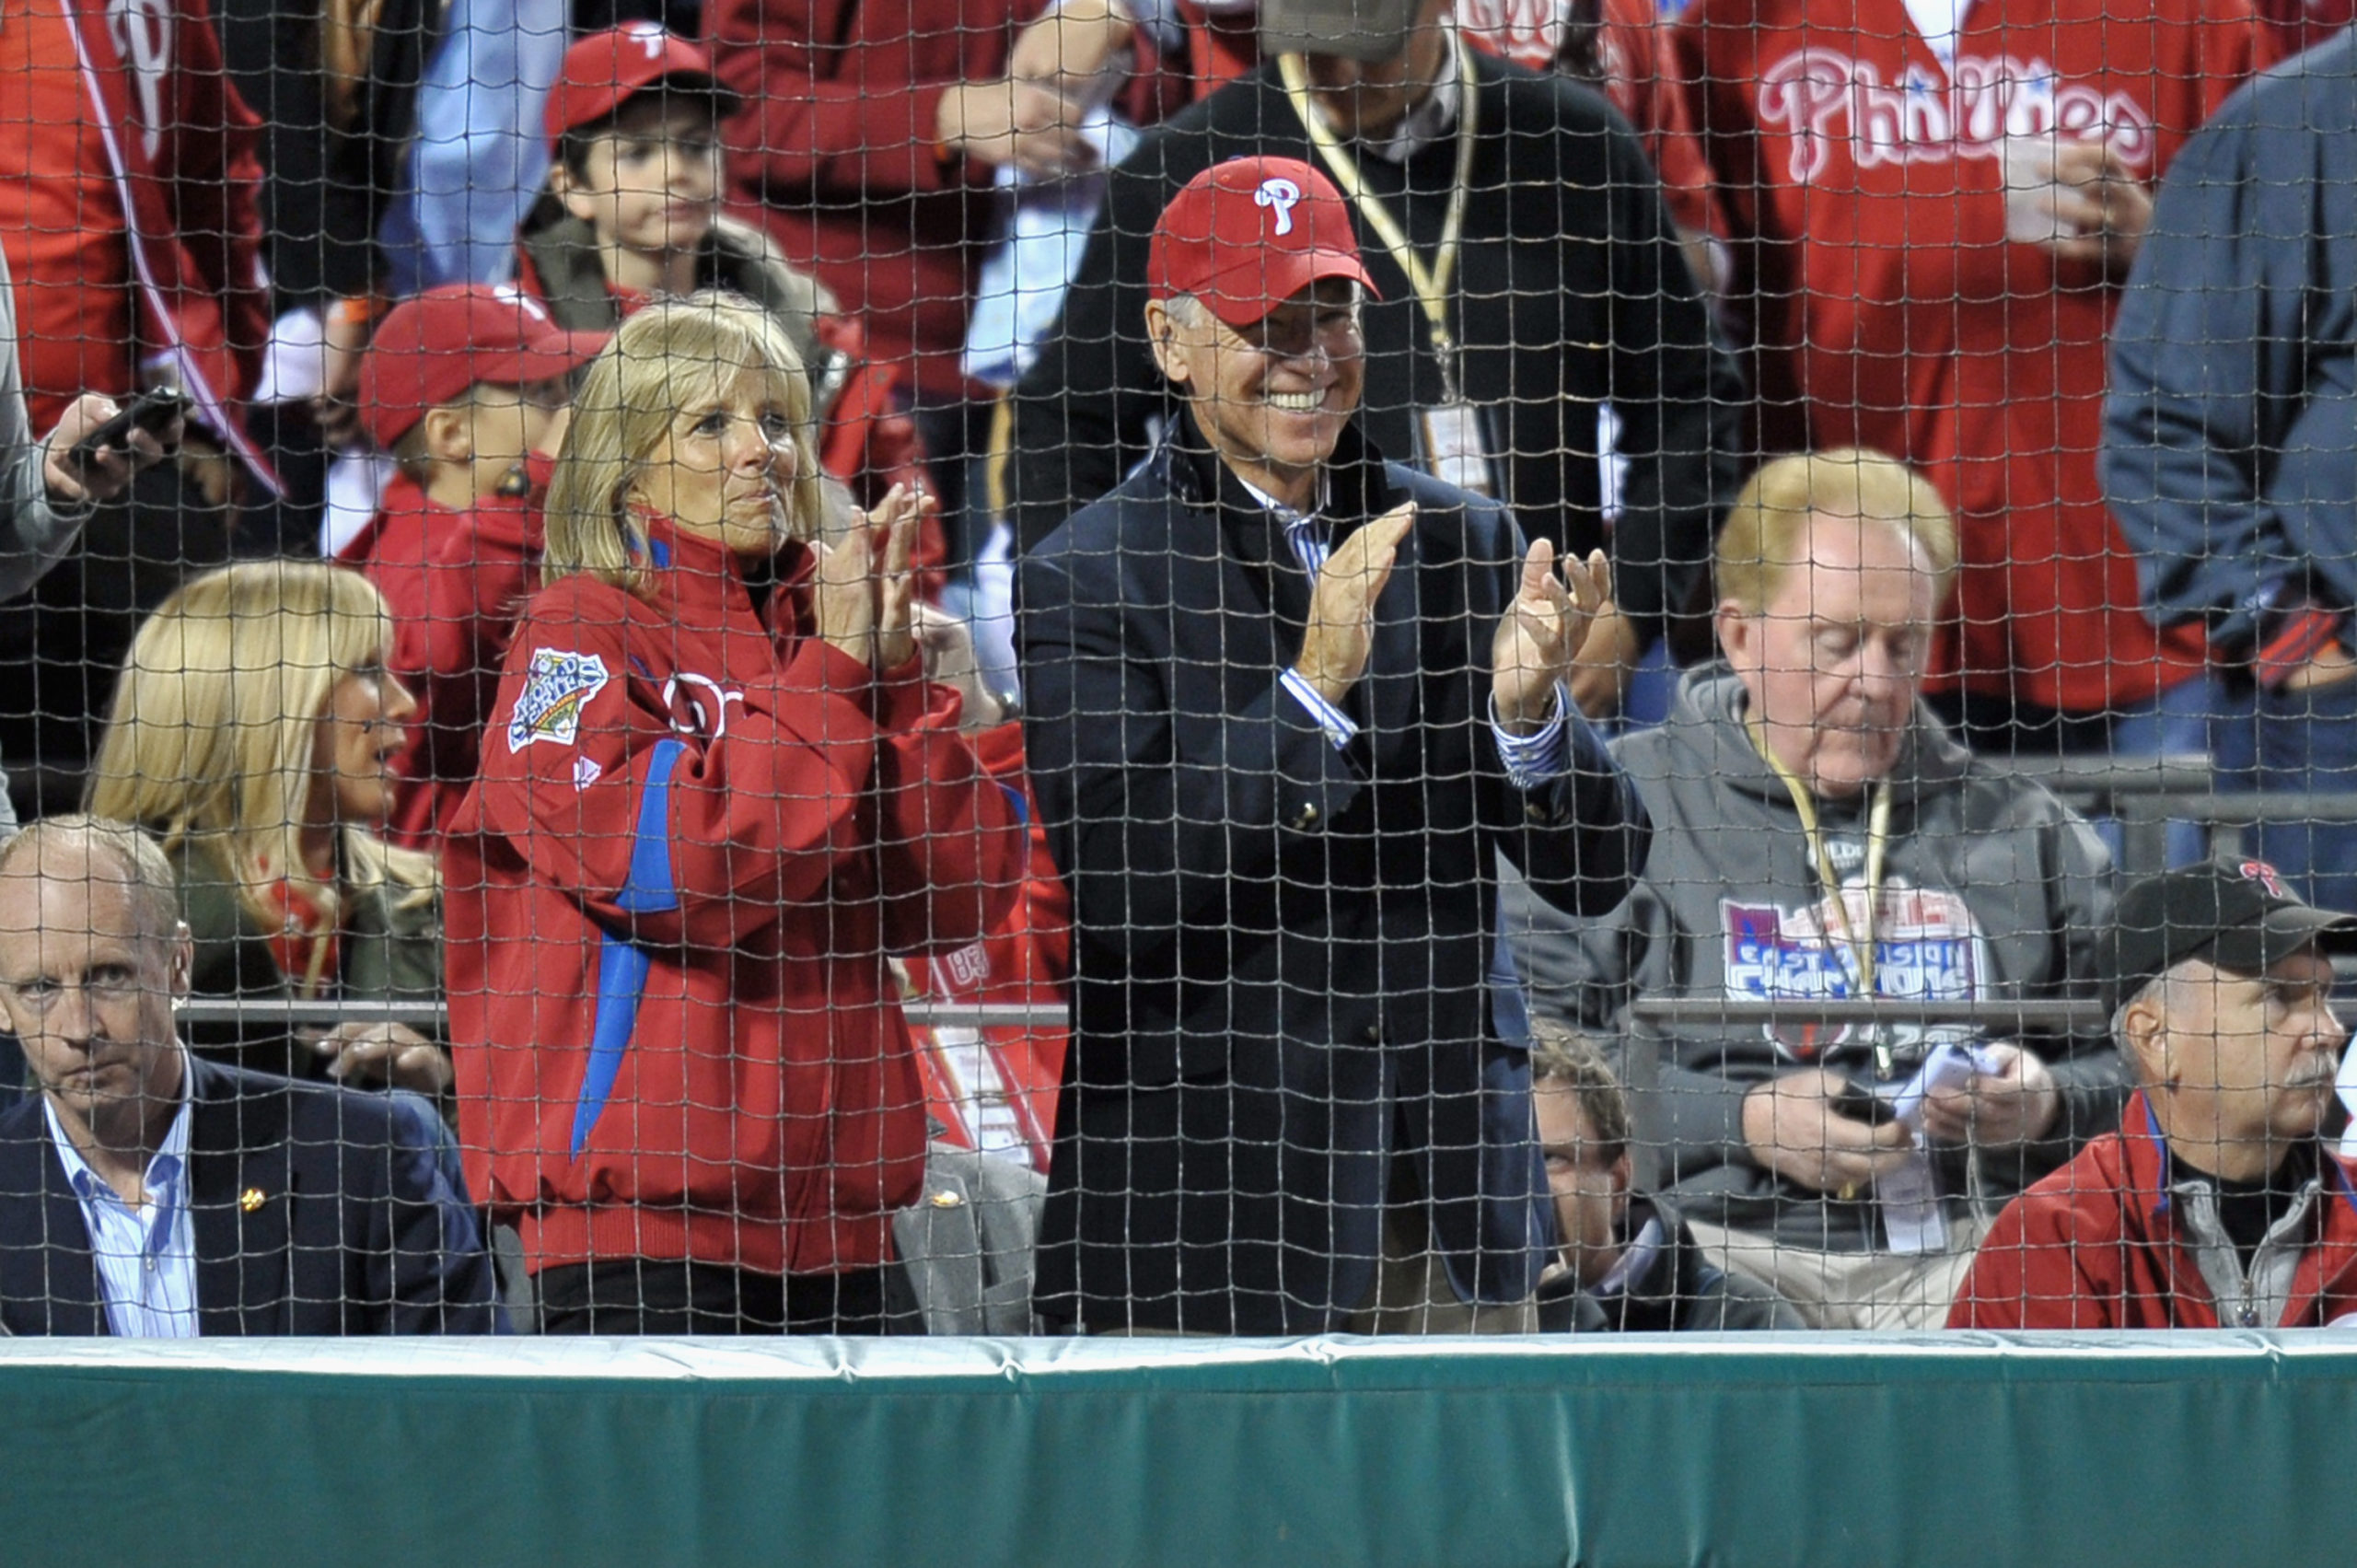 PHILADELPHIA, PA - OCTOBER 07: U.S. Vice President Joe Biden and his wife Jill watch the Philadelphia Phillies host the St. Louis Cardinals during Game Five of the National League Divisional Series at Citizens Bank Park on October 7, 2011 in Philadelphia, Pennsylvania. (Photo by Drew Hallowell/Getty Images)